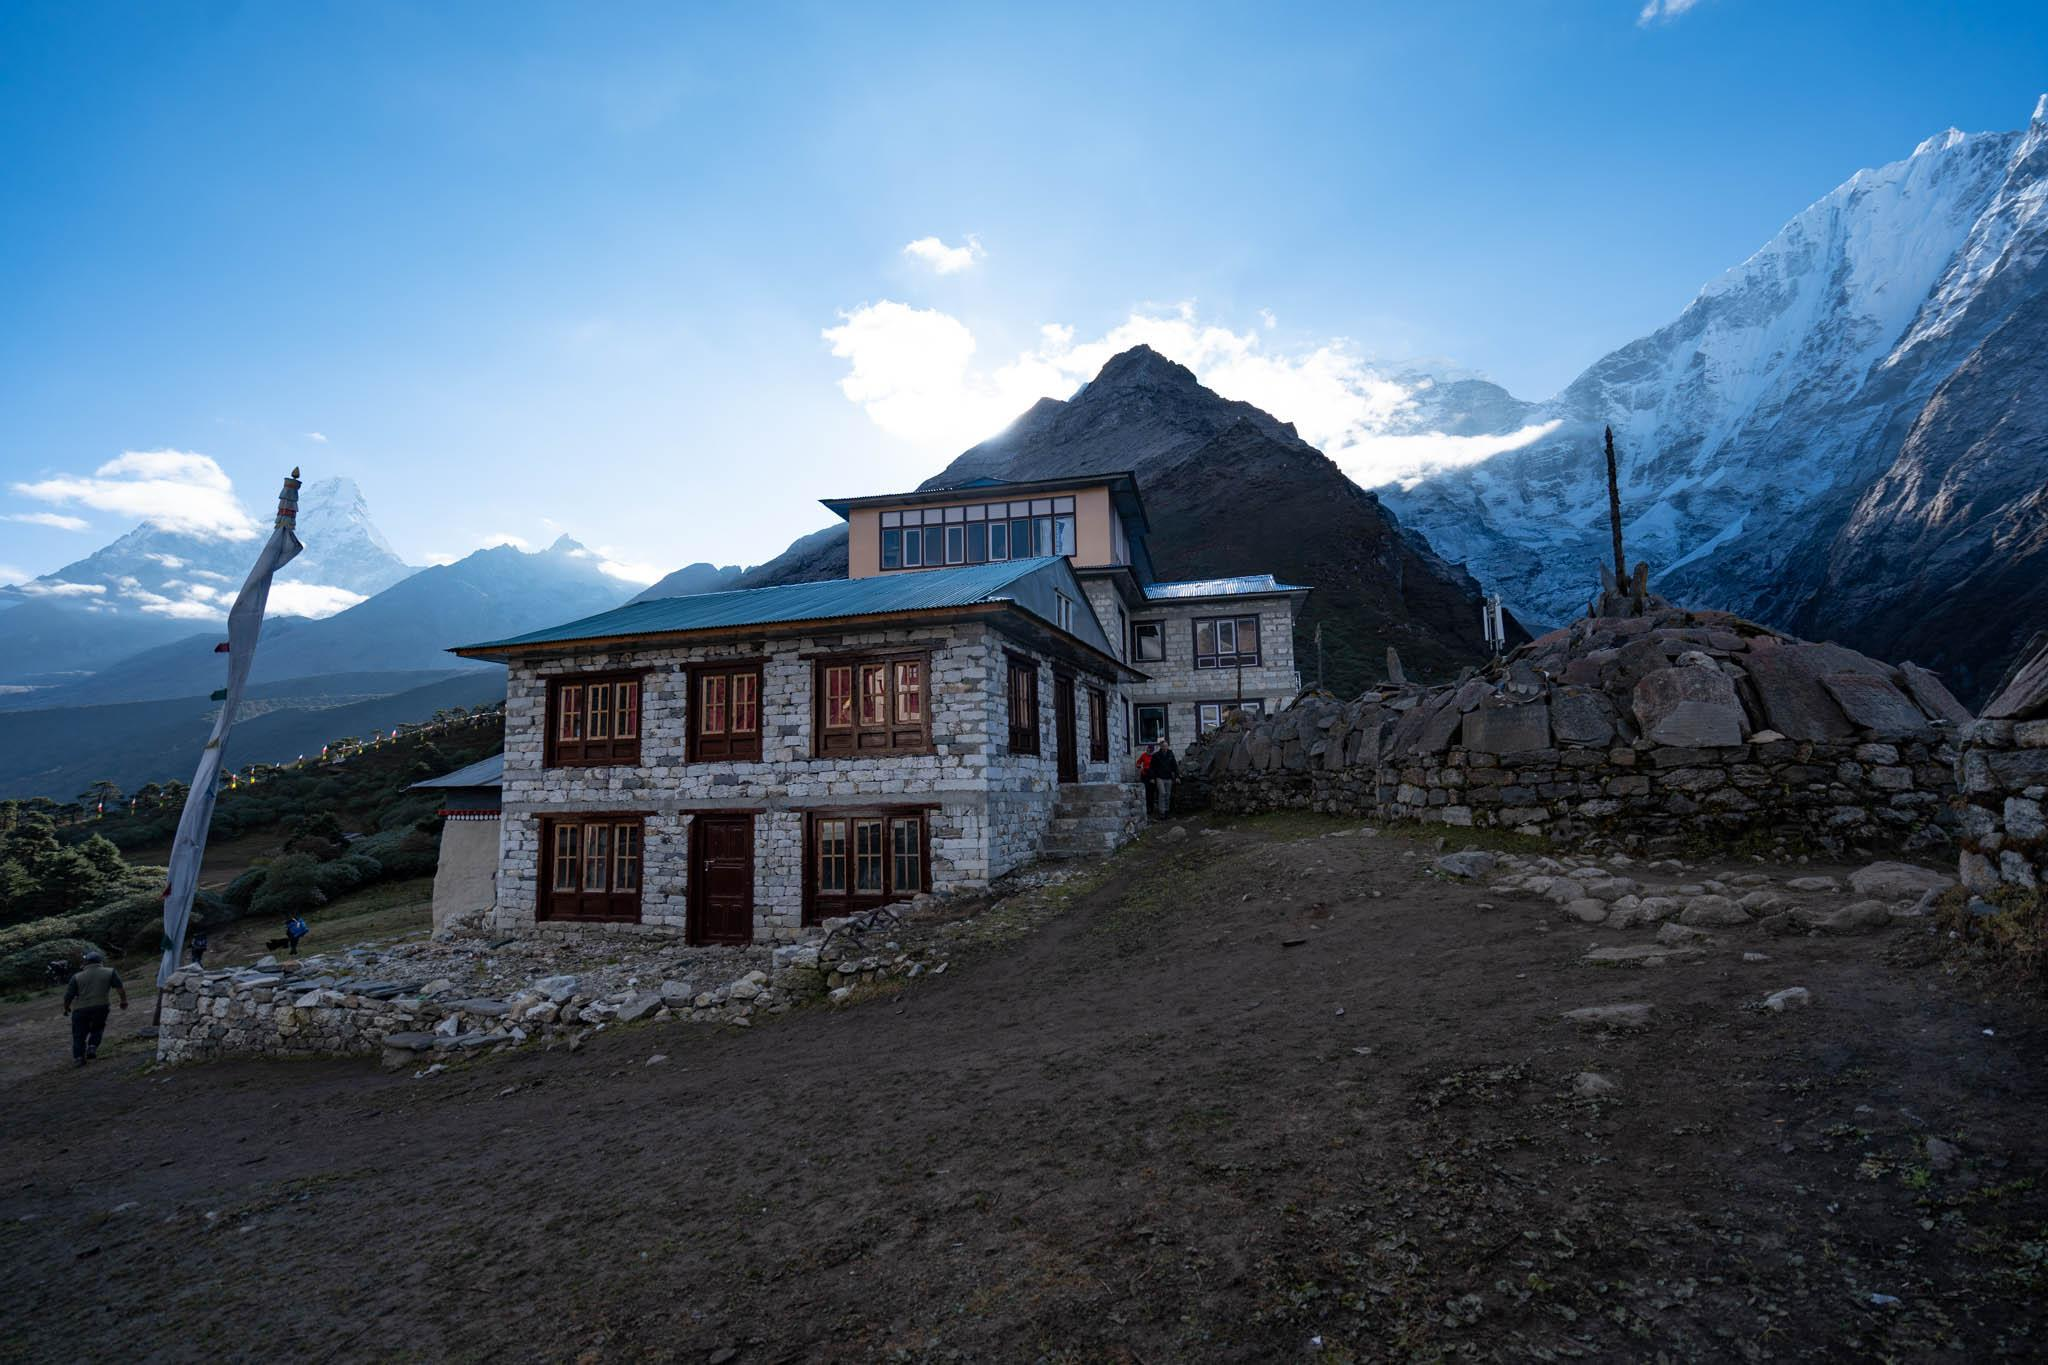 A Nepalese teahouse on the Everest trail